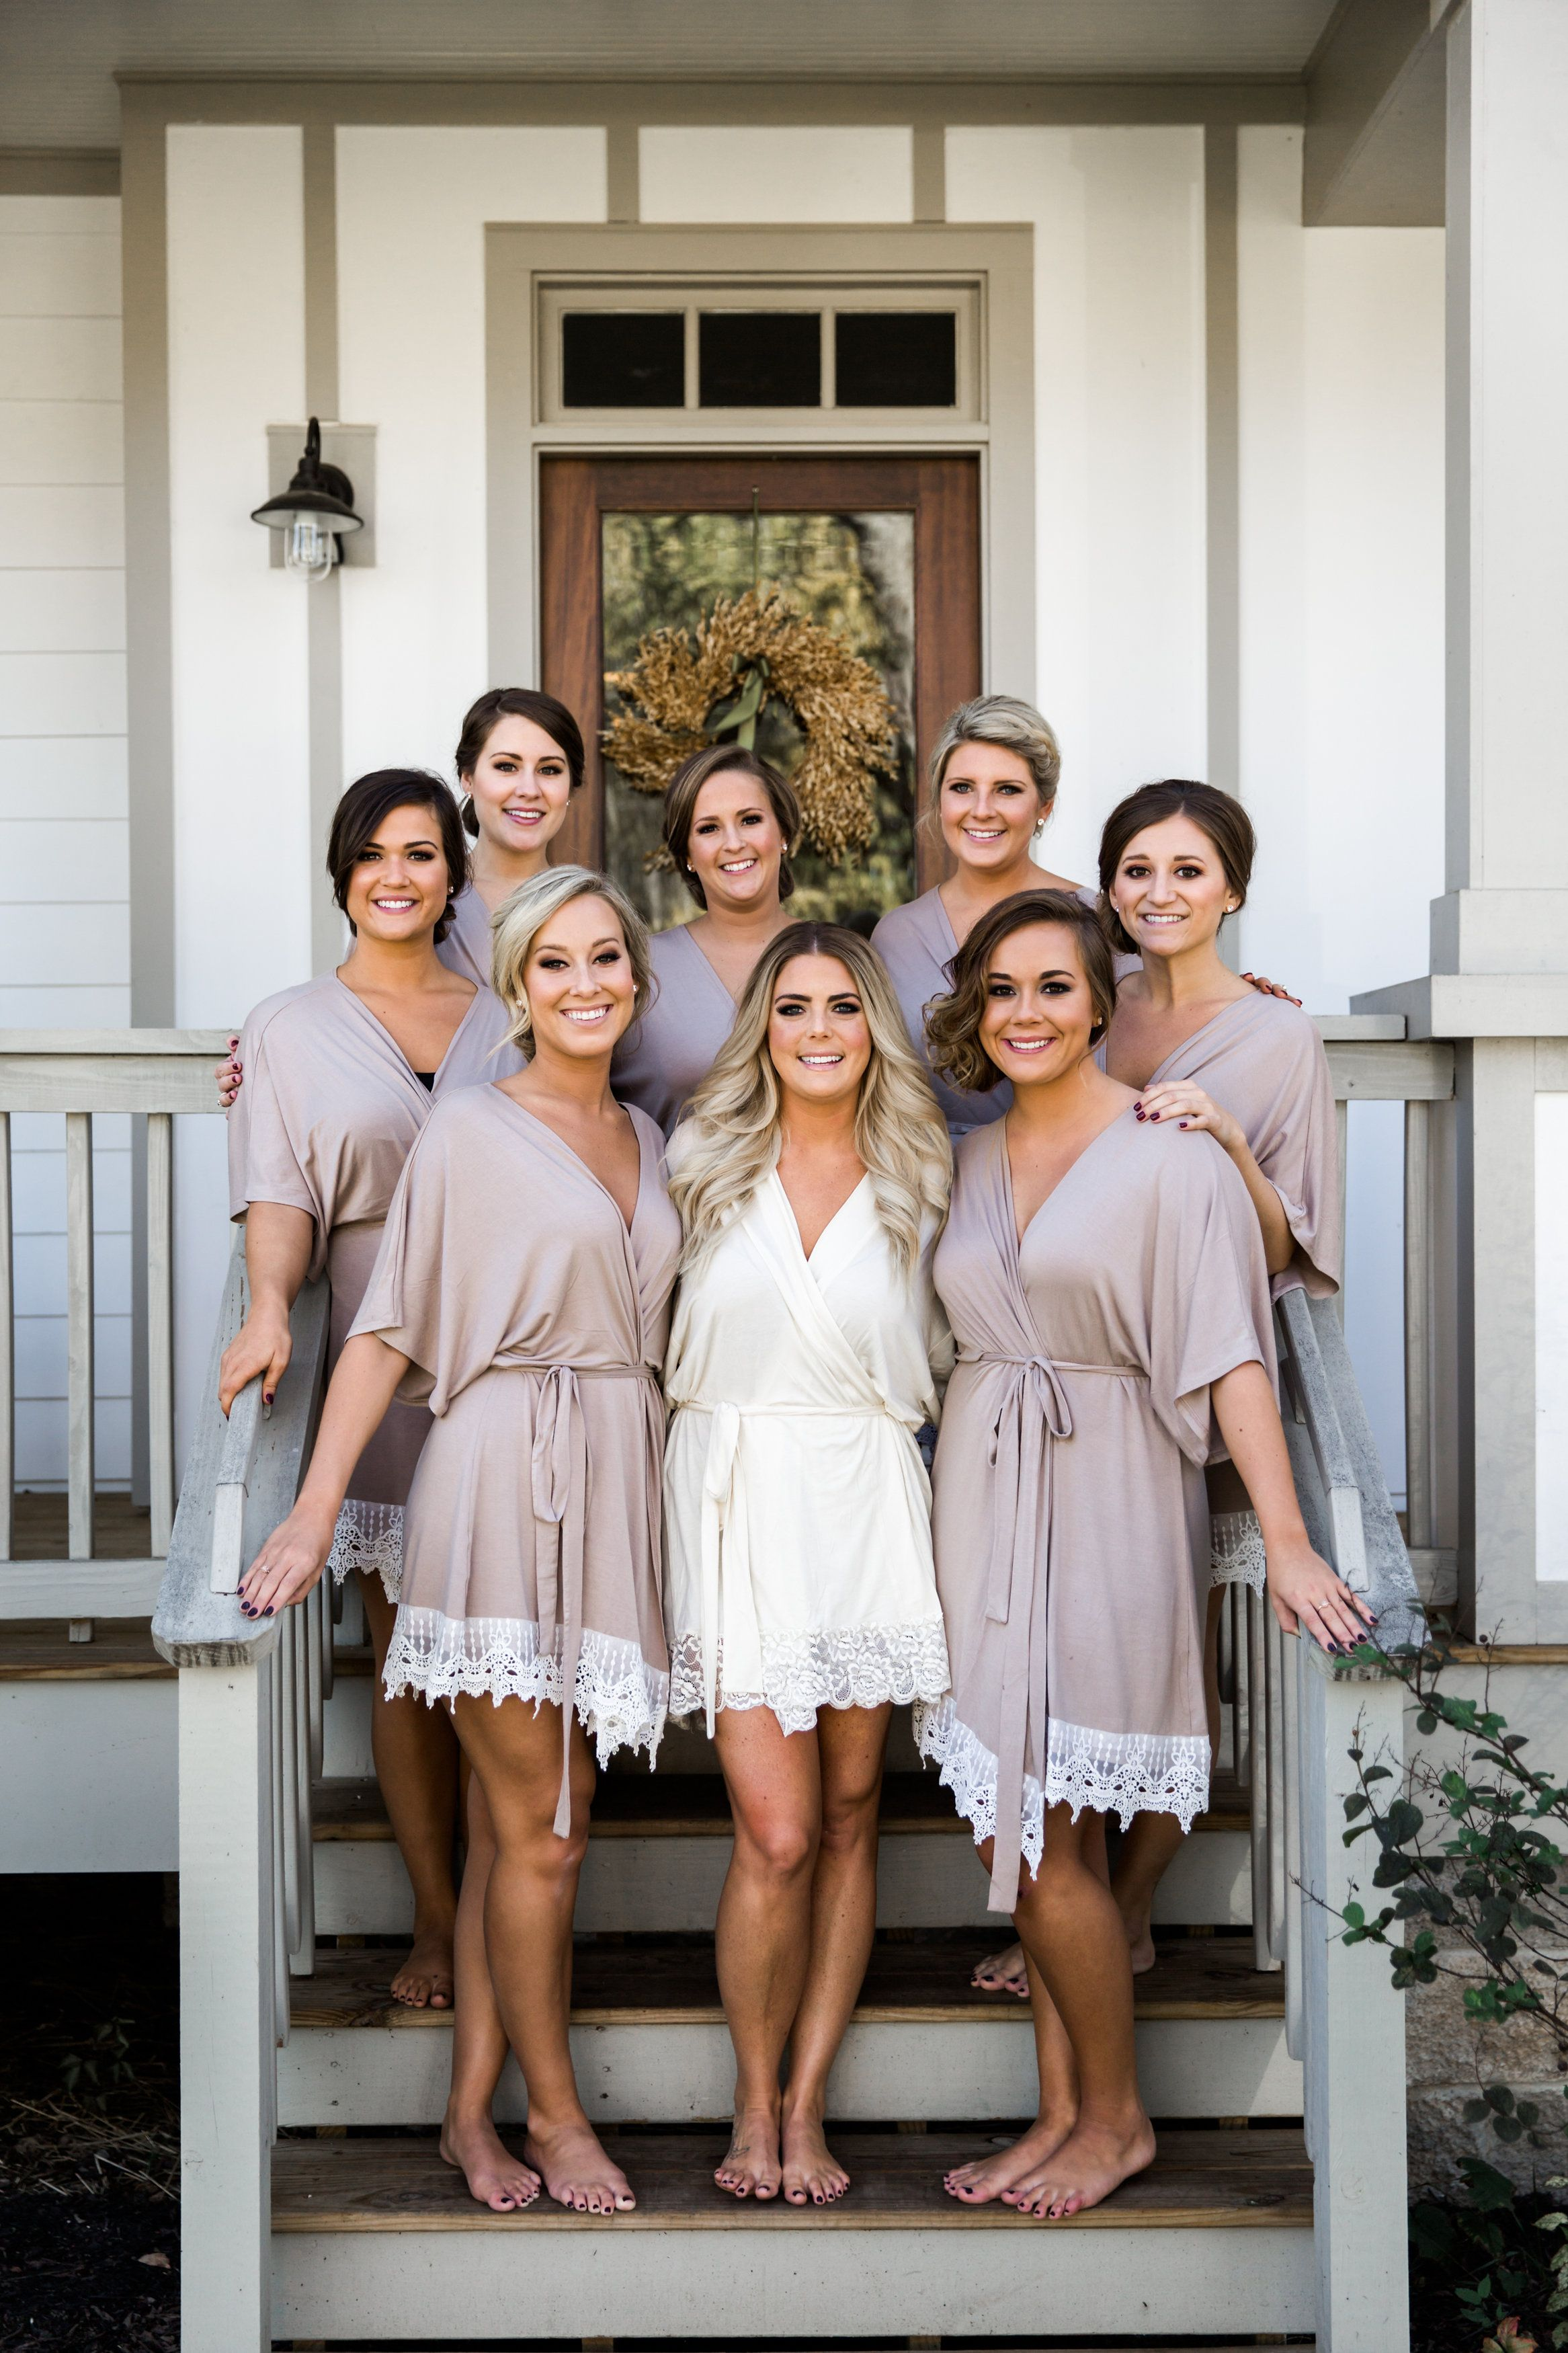 Bride and bridesmaids in matching robes getting ready for a Belle Meade  Plantation wedding in Nashville. Nyk + Cali Wedding Photography 9f7595b7d